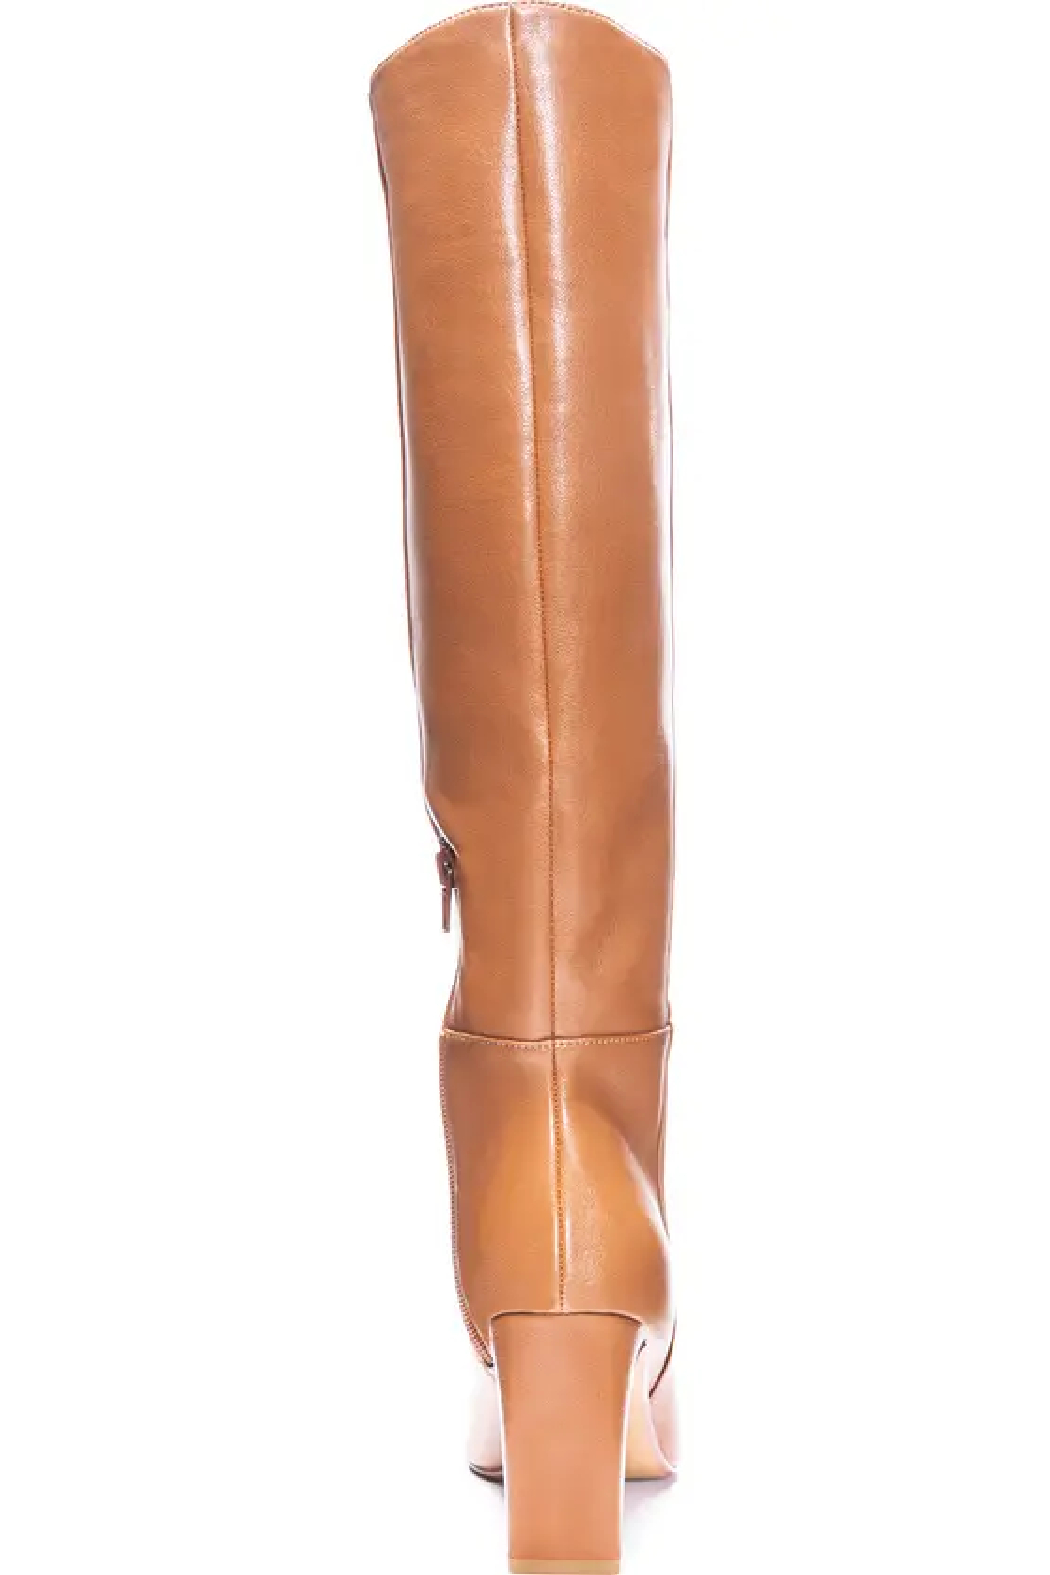 Chinese Laundry Evanna Knee-High Boot - Back Cropped Image